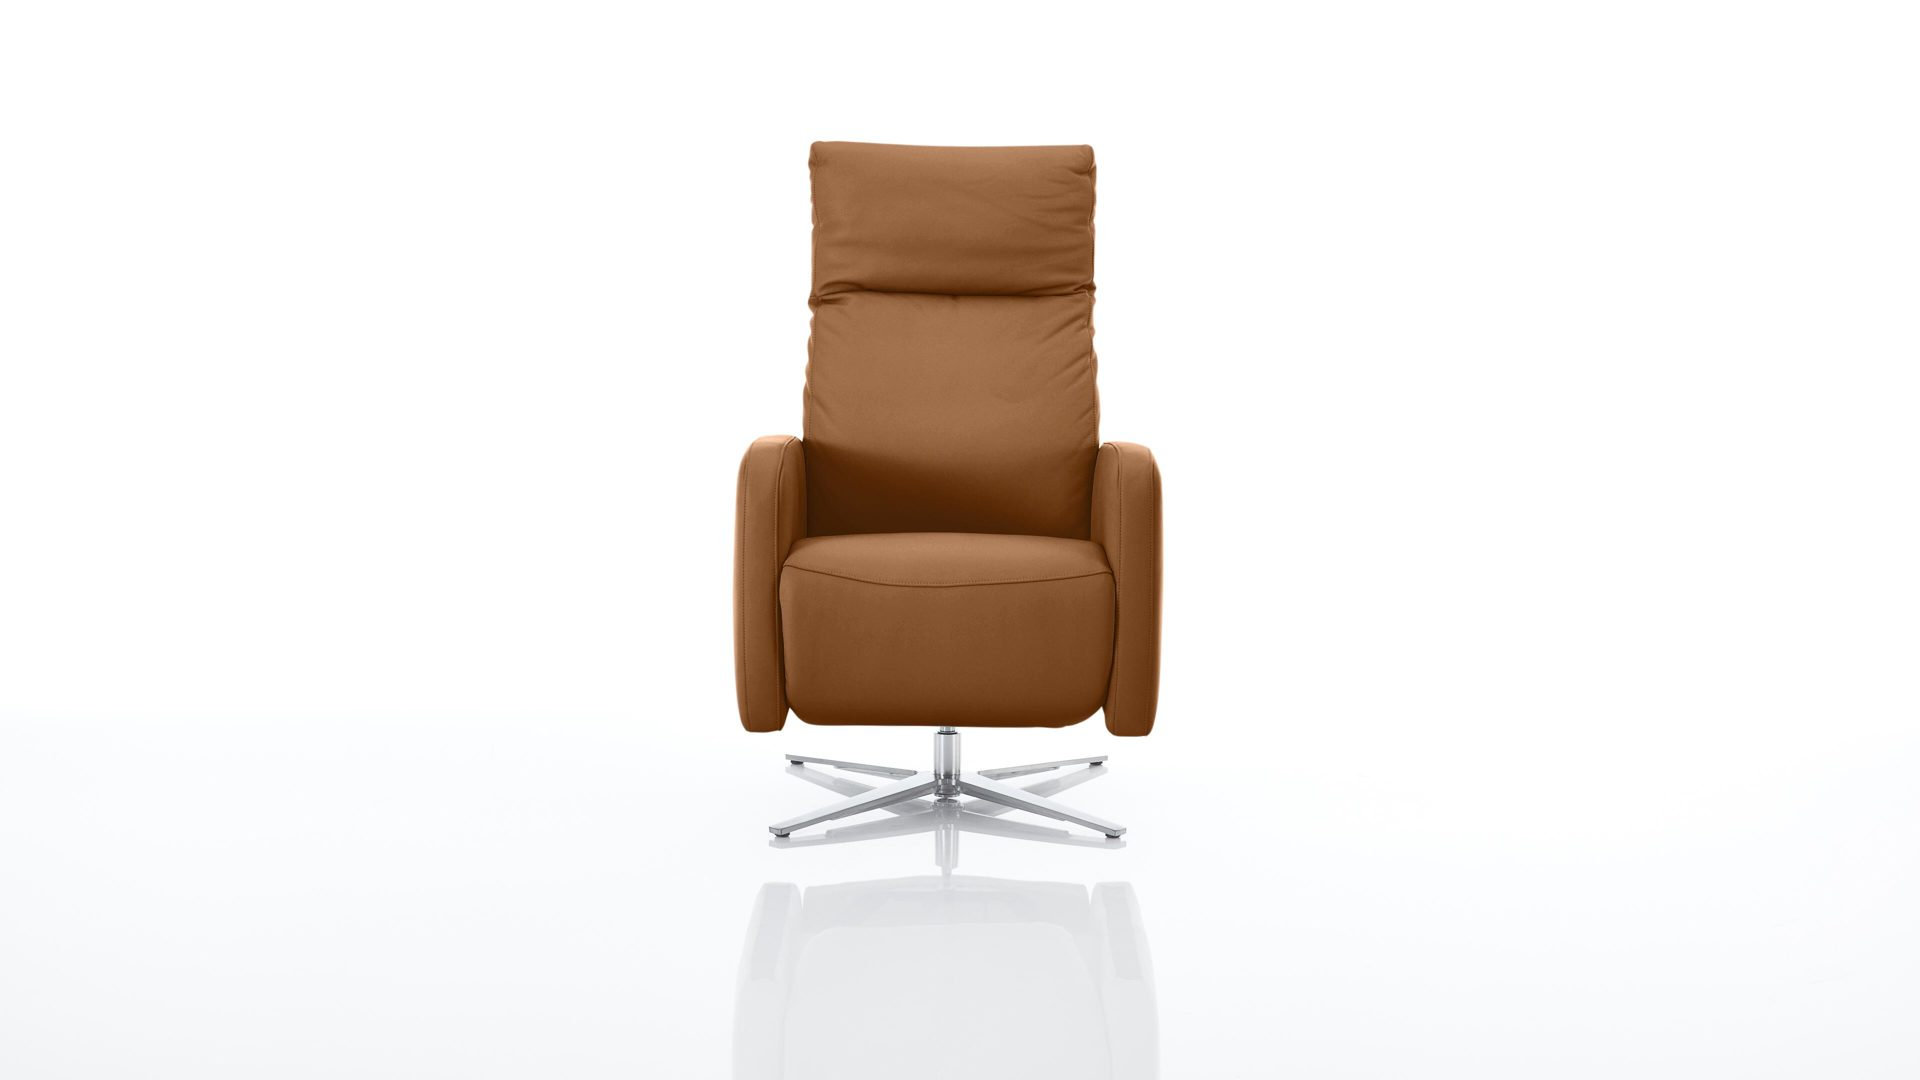 Sessel Interliving aus Leder in Braun Interliving Sessel Serie 4501 – Polstermöbel cognacfarbenes LongLife-Leder Z77-50 & satinierter Nickel-Sternfuß